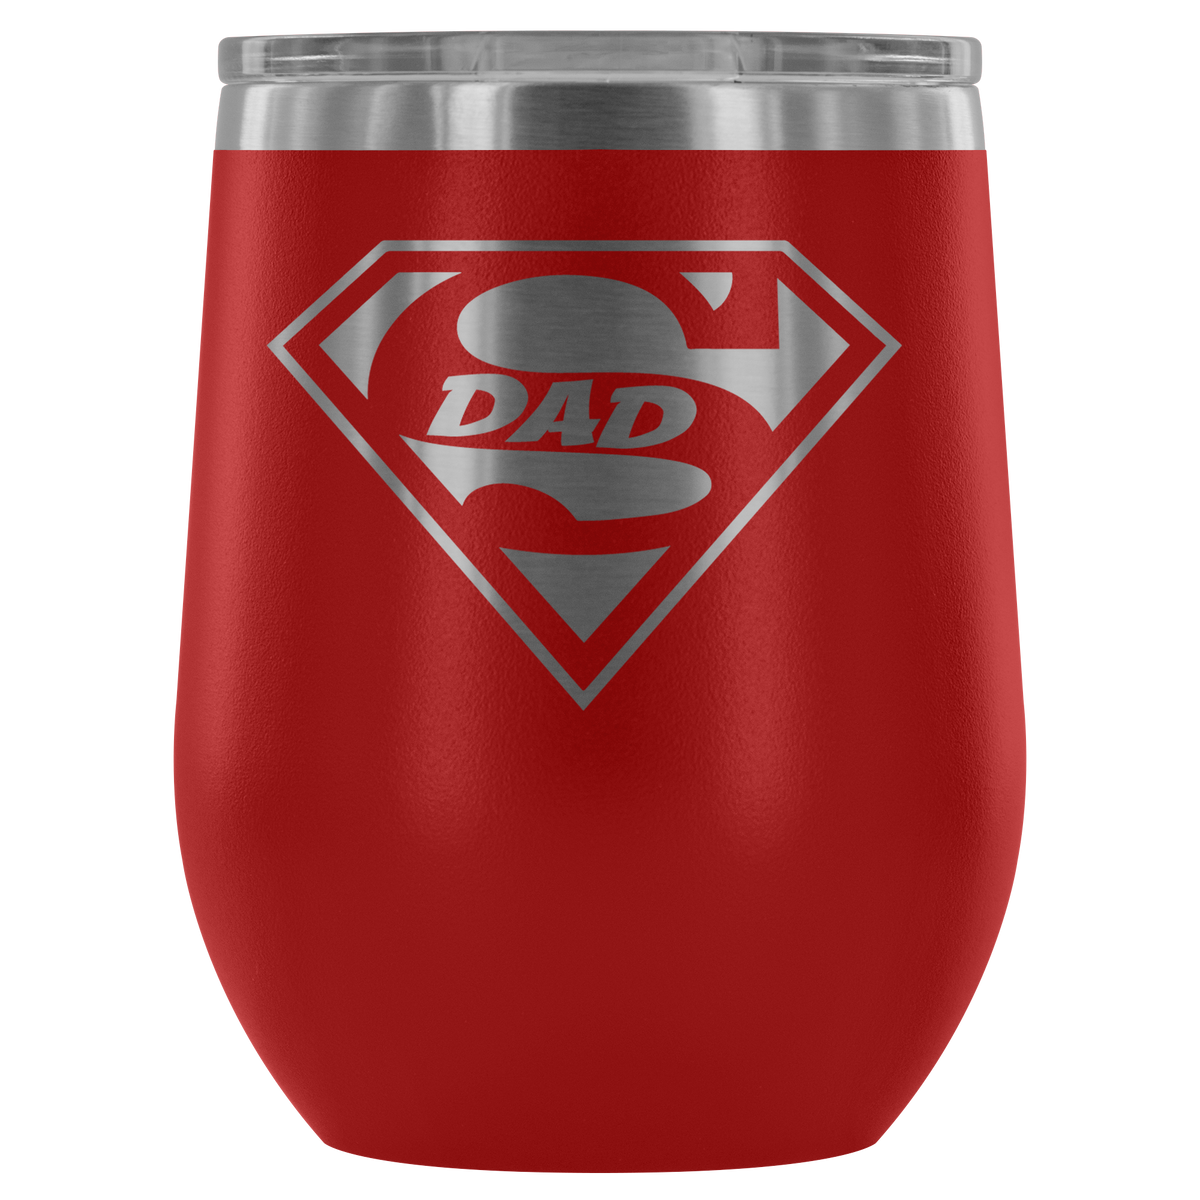 Superdad - 12oz Tumbler - Red